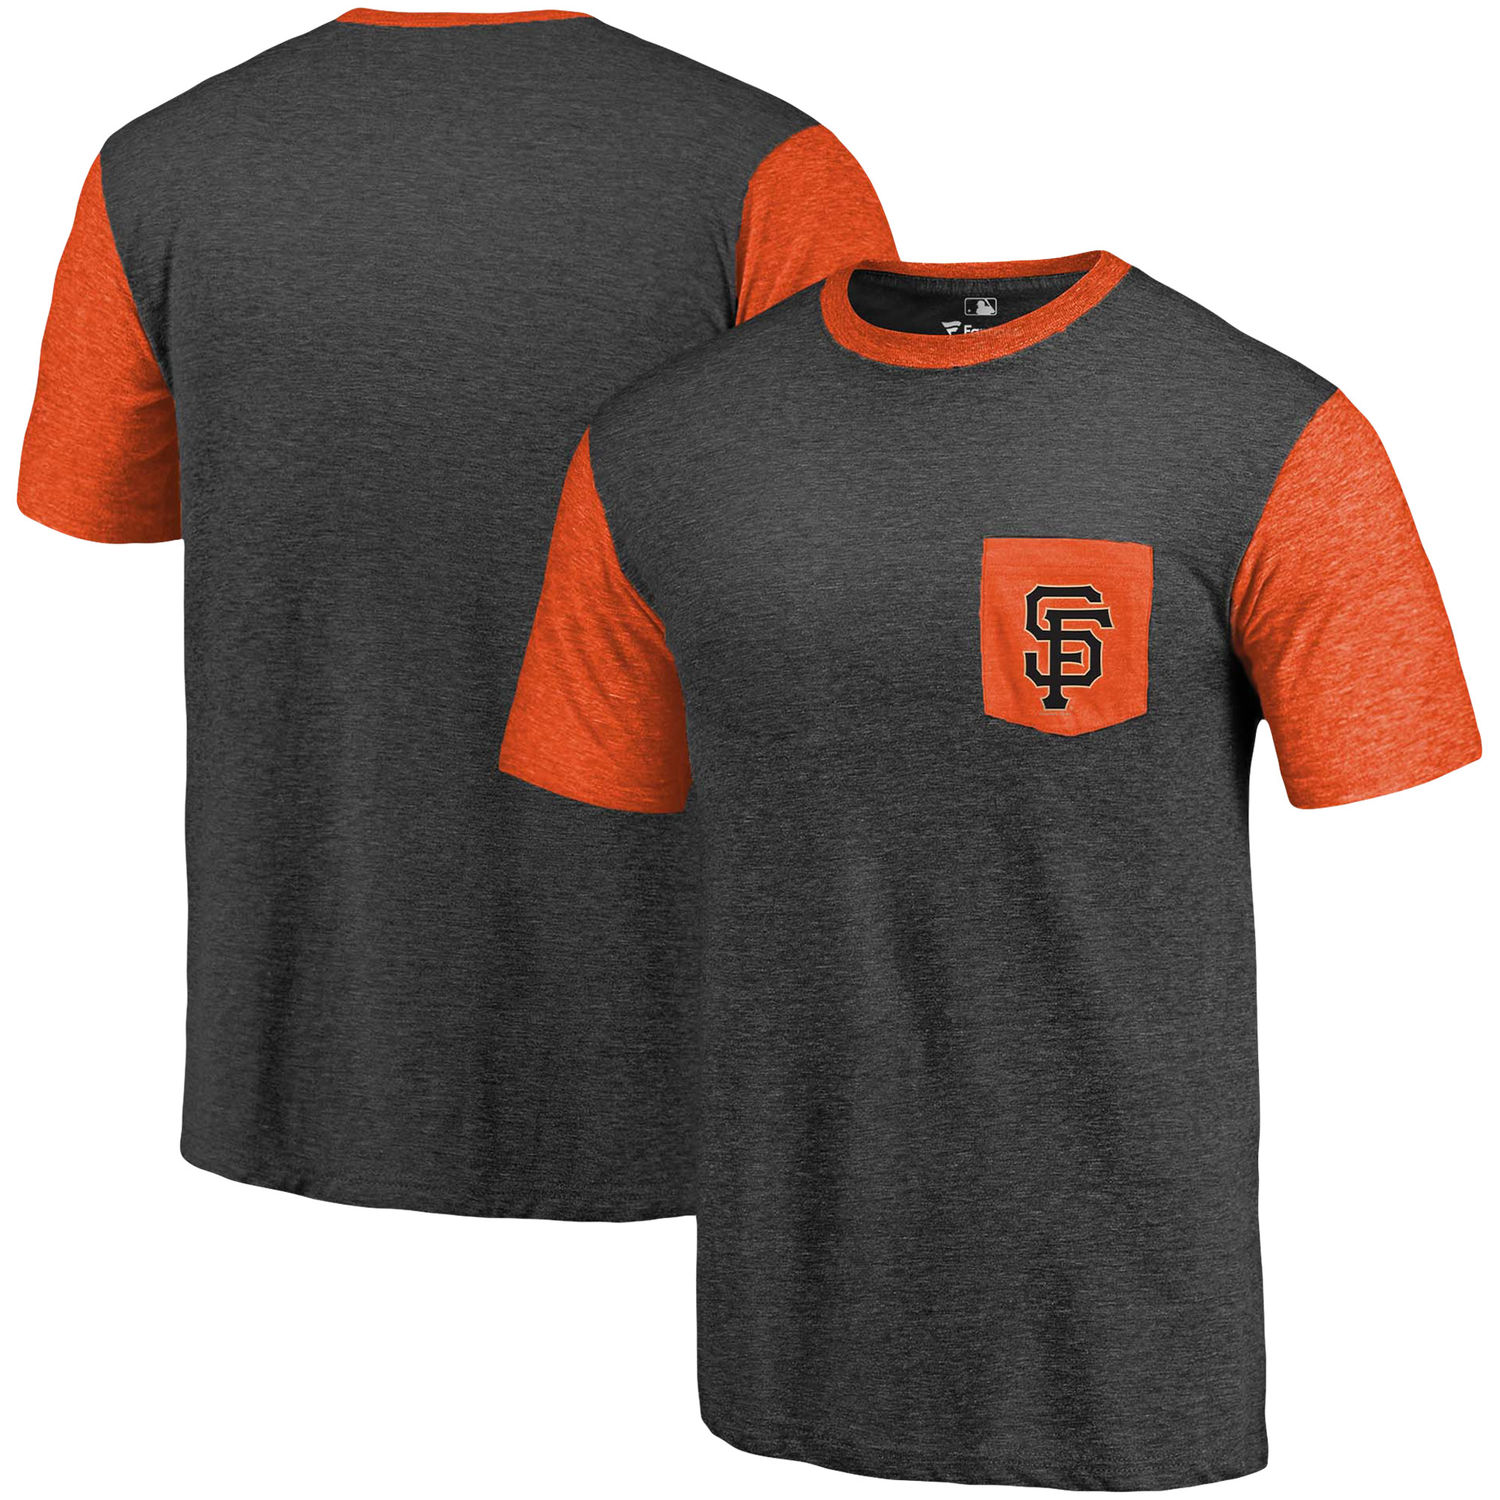 Men's San Francisco Giants Fanatics Branded Black-Orange Refresh Pocket T-Shirt